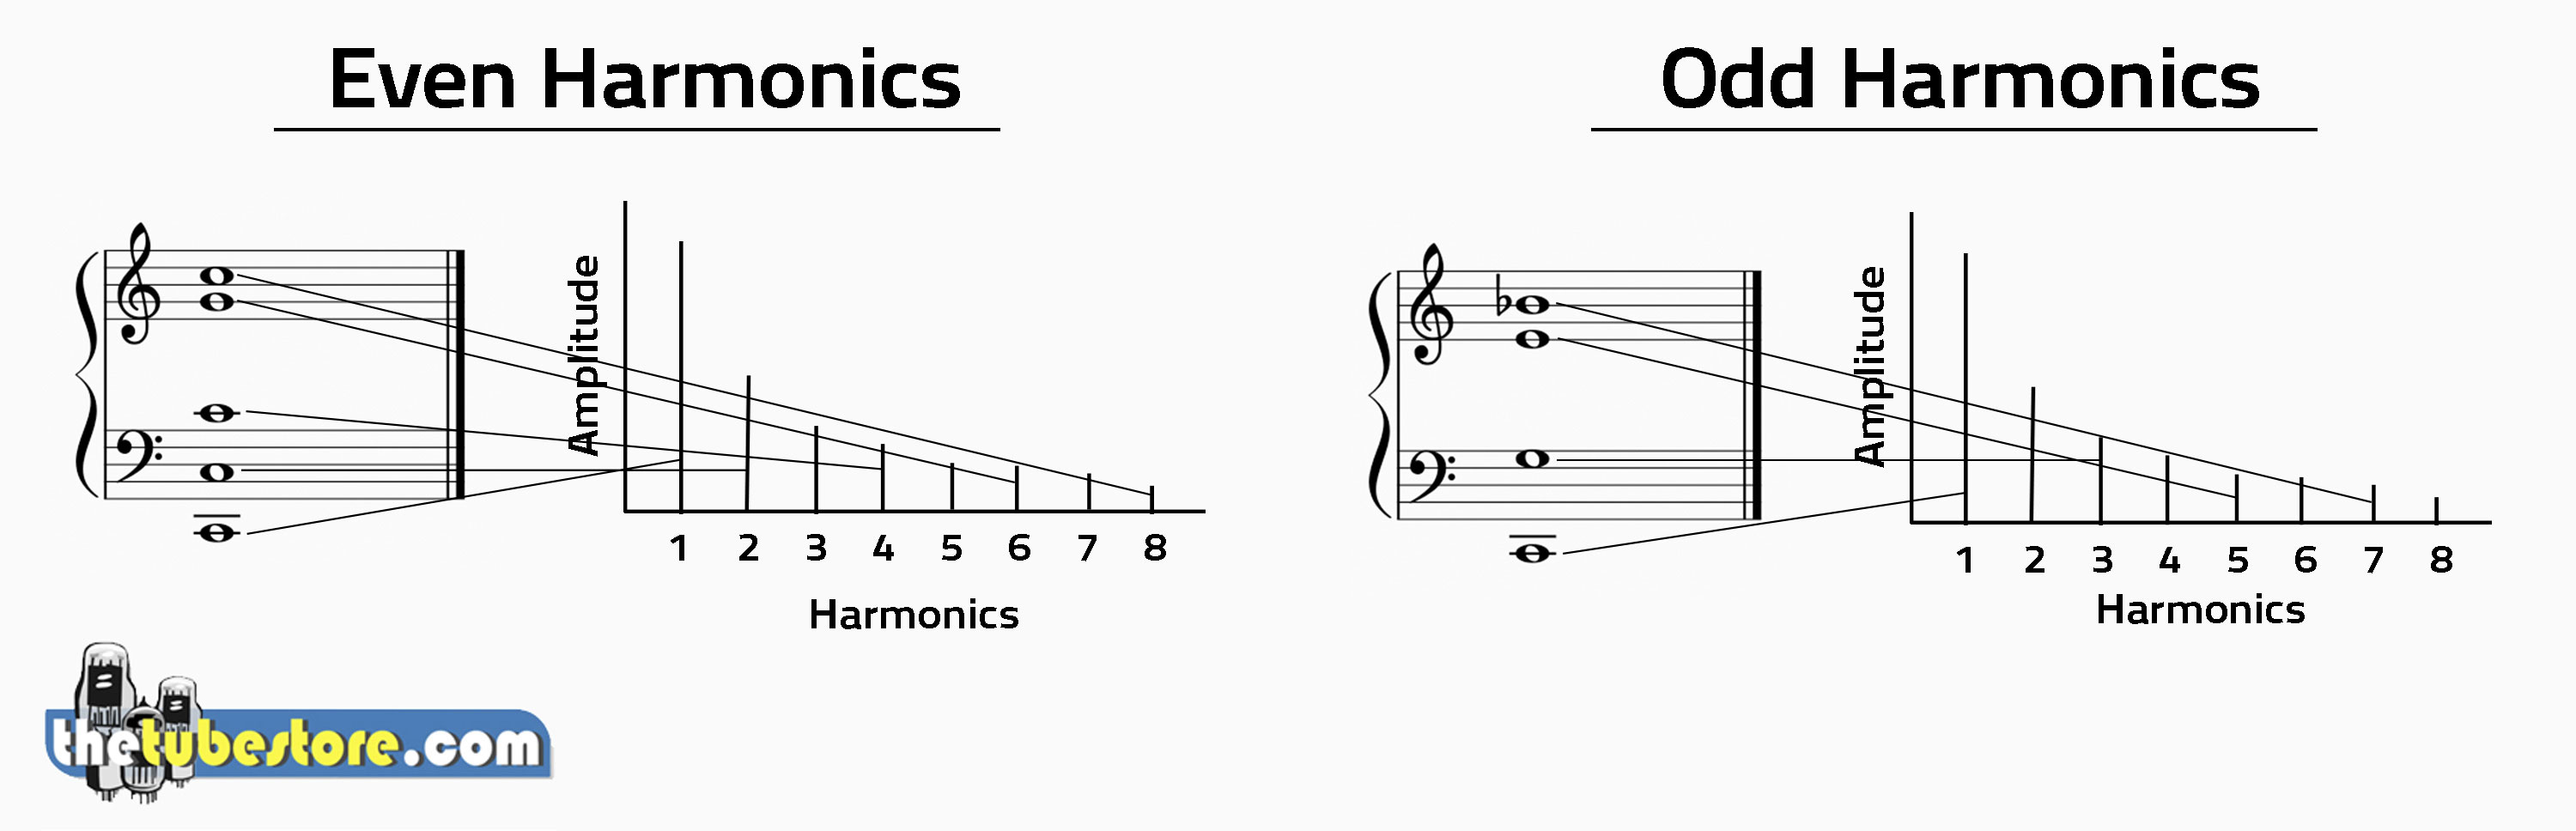 Image result for odd vs even harmonic distortion